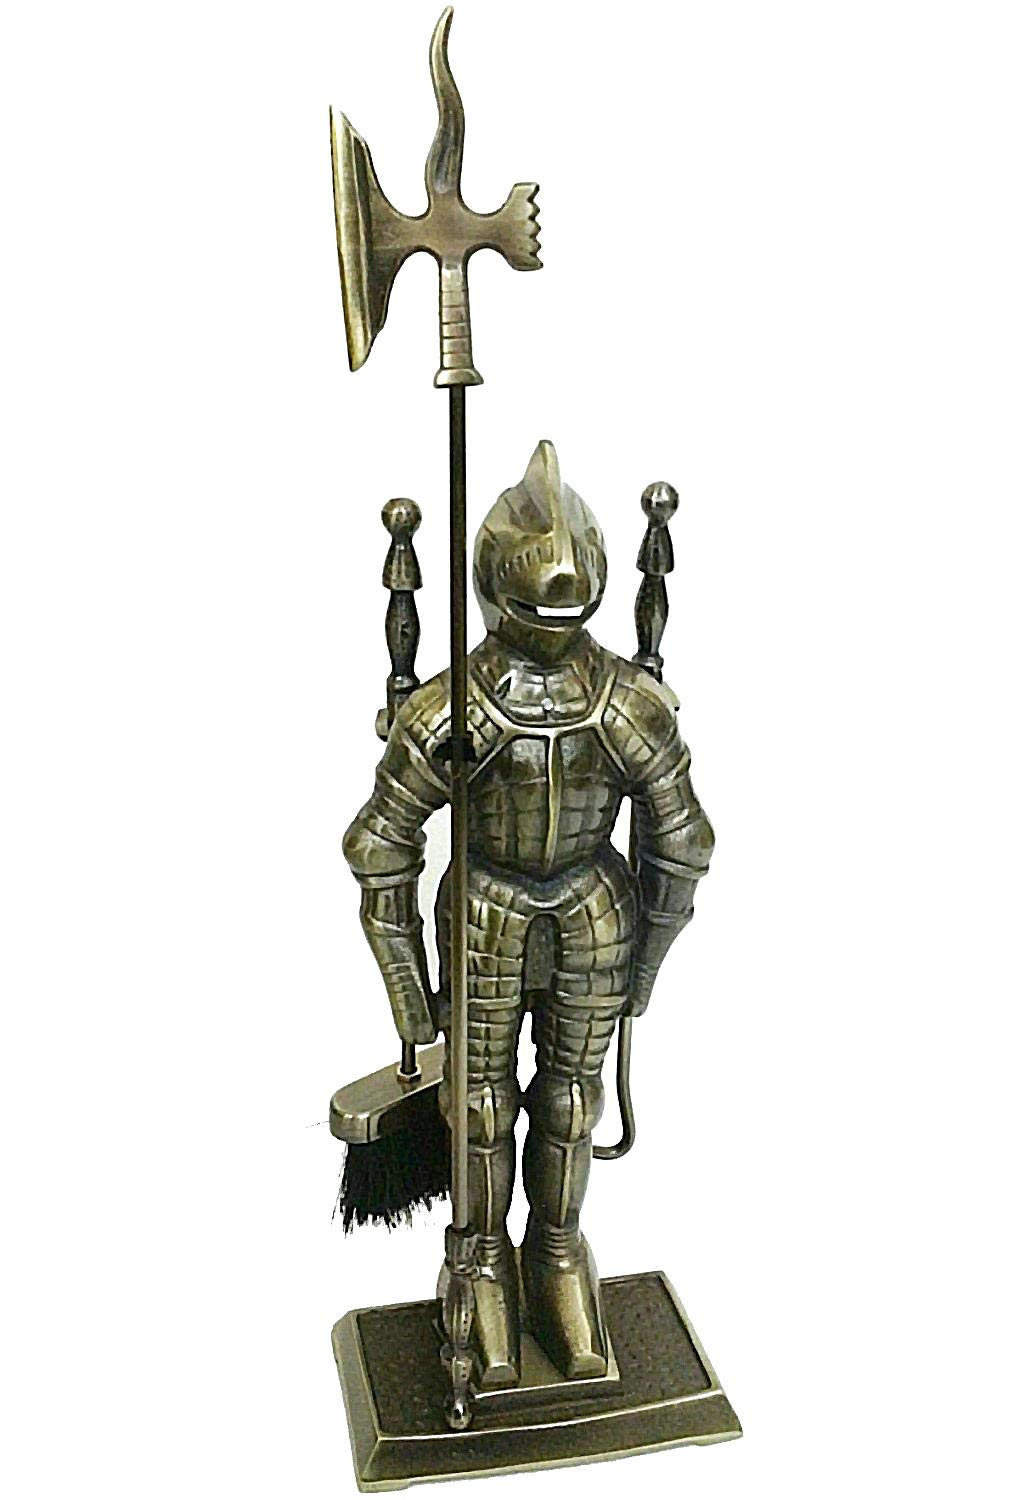 Lizh Metalwork Middle Ages Knight Cast Iron Fireplace Tool Set,Antique Brass by Lizh Metalwork